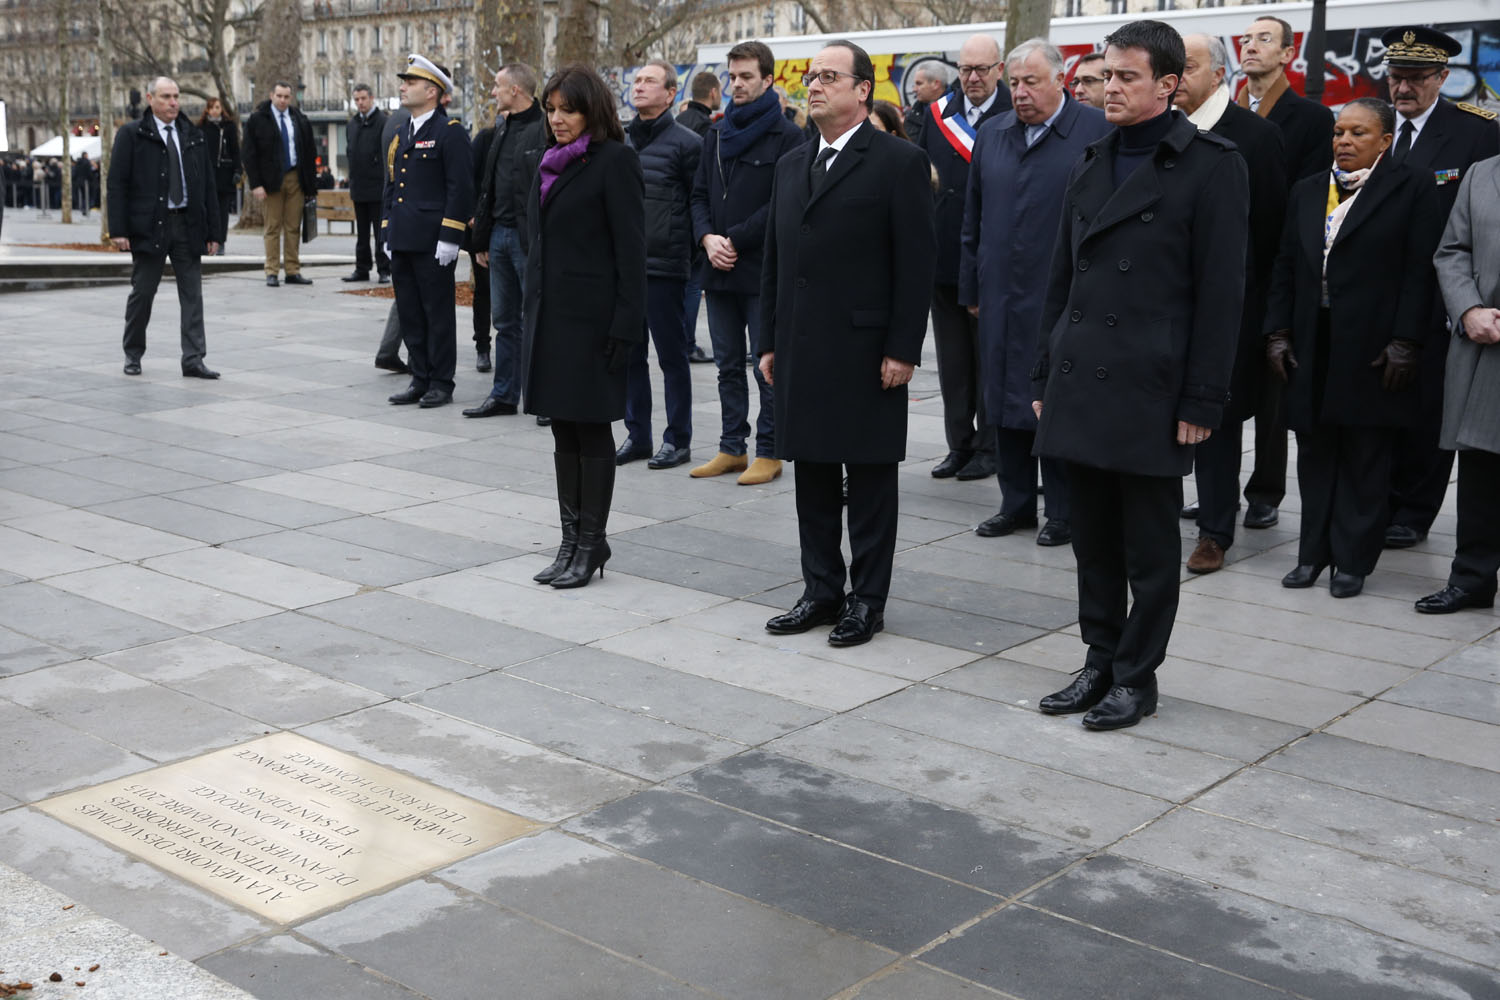 French President Francois Hollande (C), Prime Minister Manuel Valls (R) and Paris Mayor Anne Hidalgo (L) pay respect after unveiling a commemorative plaque during a ceremony held, on January 10, 2016 to mark a year since 1.6 million people thronged the French capital in a show of unity after attacks on the Charlie Hebdo newspaper and a Jewish supermarket. Just as it was last year, the vast Place de la Republique will be the focus of the gathering as people reiterate their support for freedom of expression and remember the other victims of what would become a year of jihadist outrages in France, culminating in the November 13 coordinated shootings and suicide bombings that killed 130 people and were claimed by the Islamic State (IS) group. / AFP / POOL / PHILIPPE WOJAZER